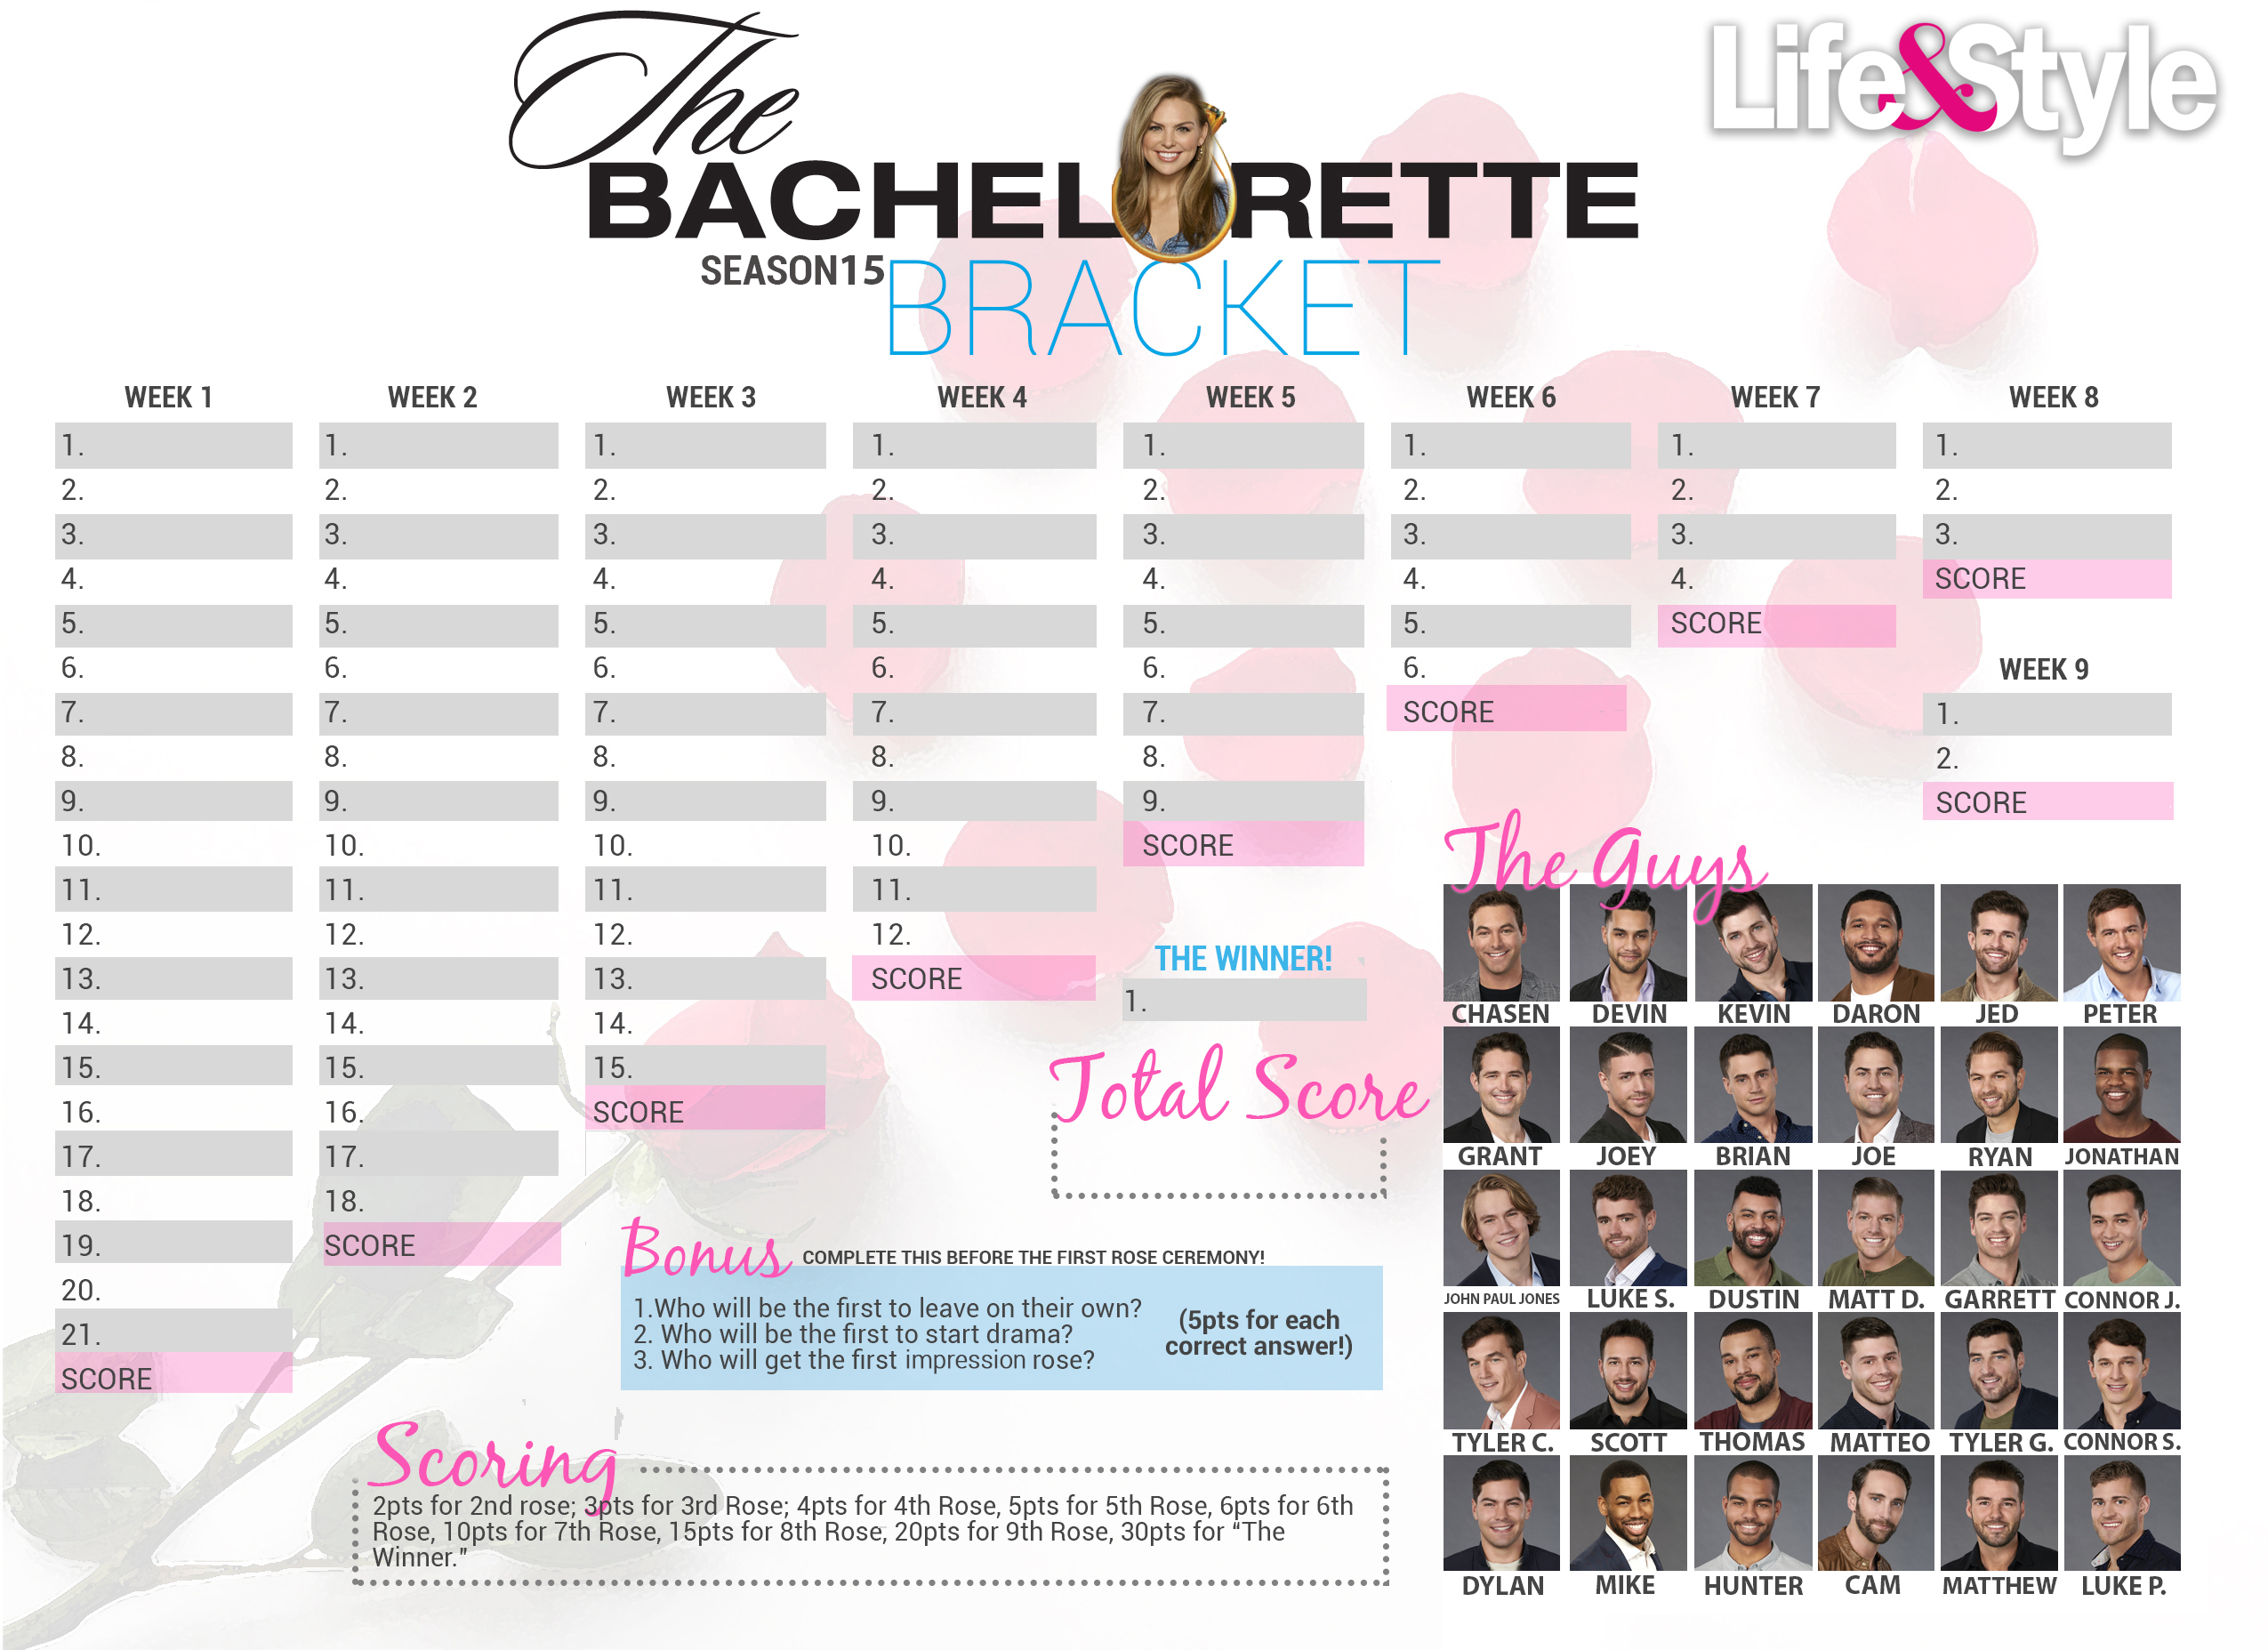 graphic regarding Bachelor Bracket Printable referred to as The Printable Bachelorette Bracket for Hannah B.s Year